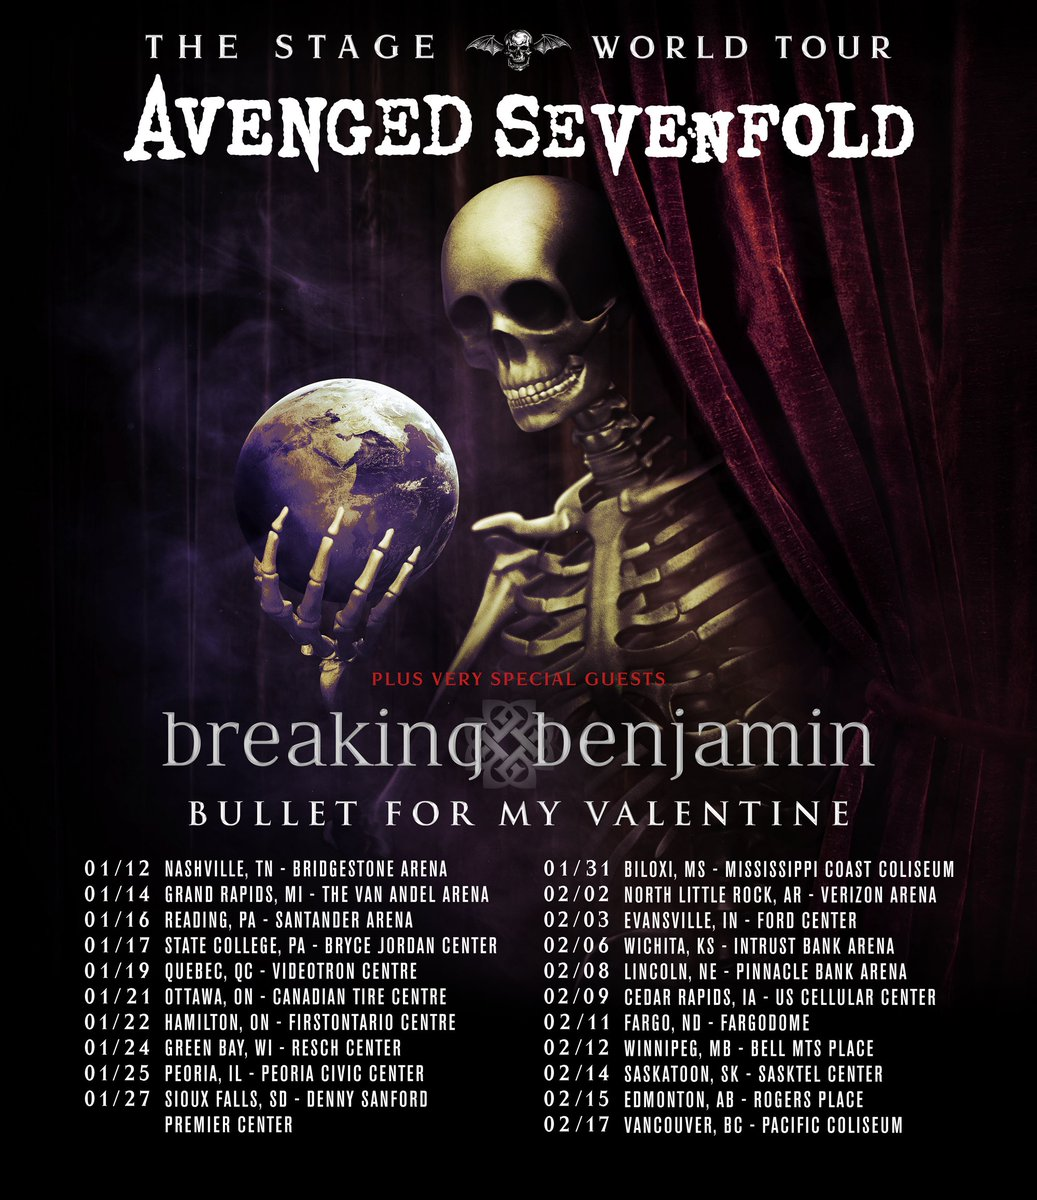 Avenged Sevenfold On Twitter Tickets VIP Packages For TheStageWorldTour In Canada With Breakingbenj Bfmvofficial Are Sale Now